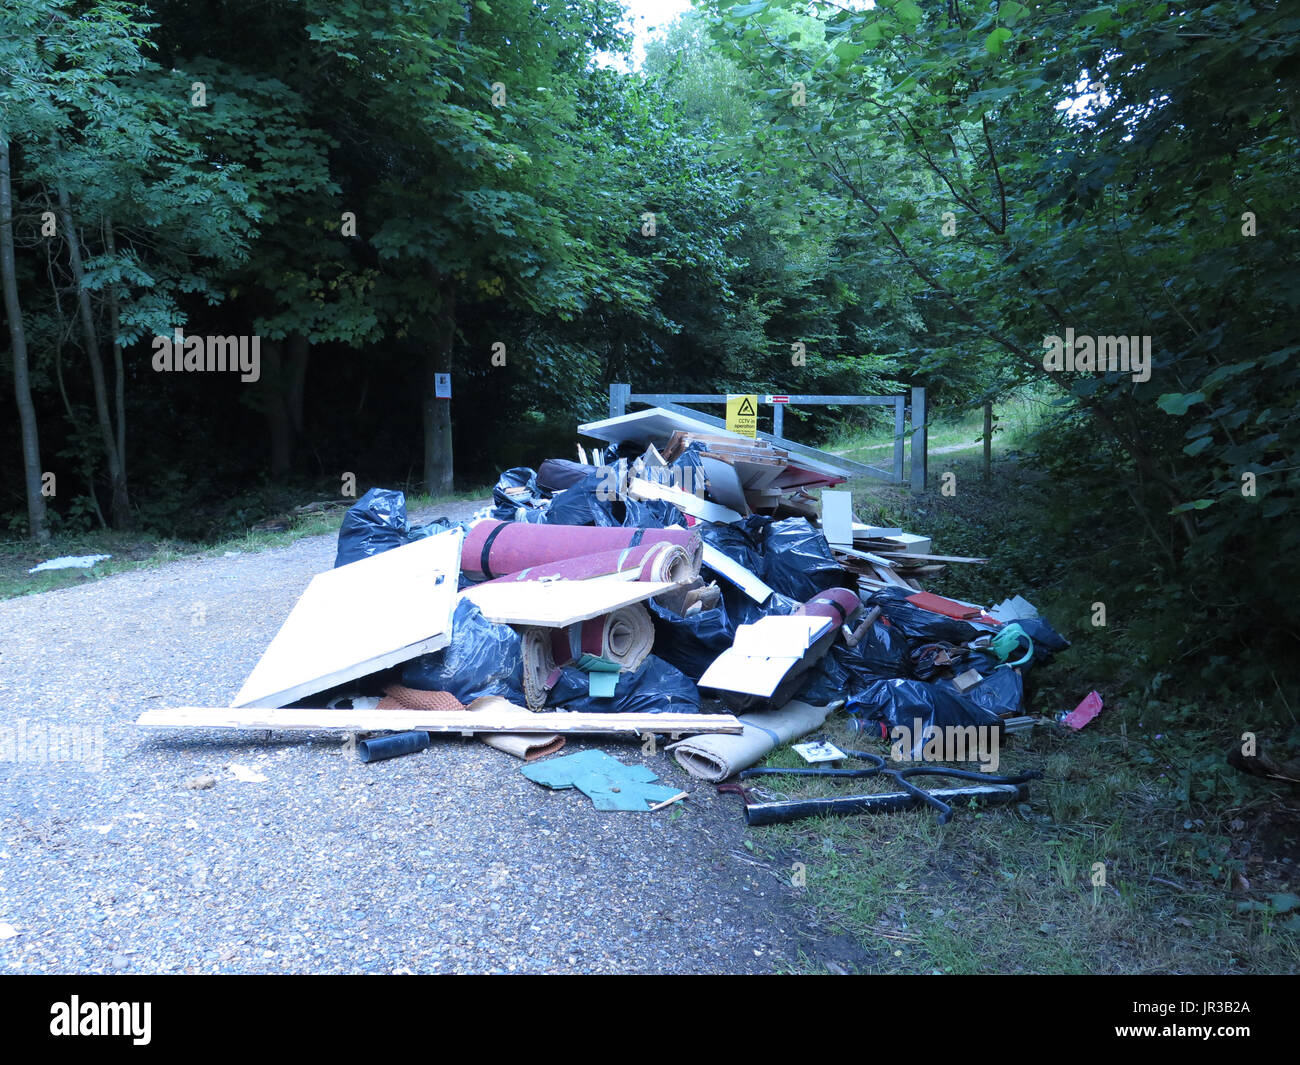 fly tipping under CCTV sign - Stock Image